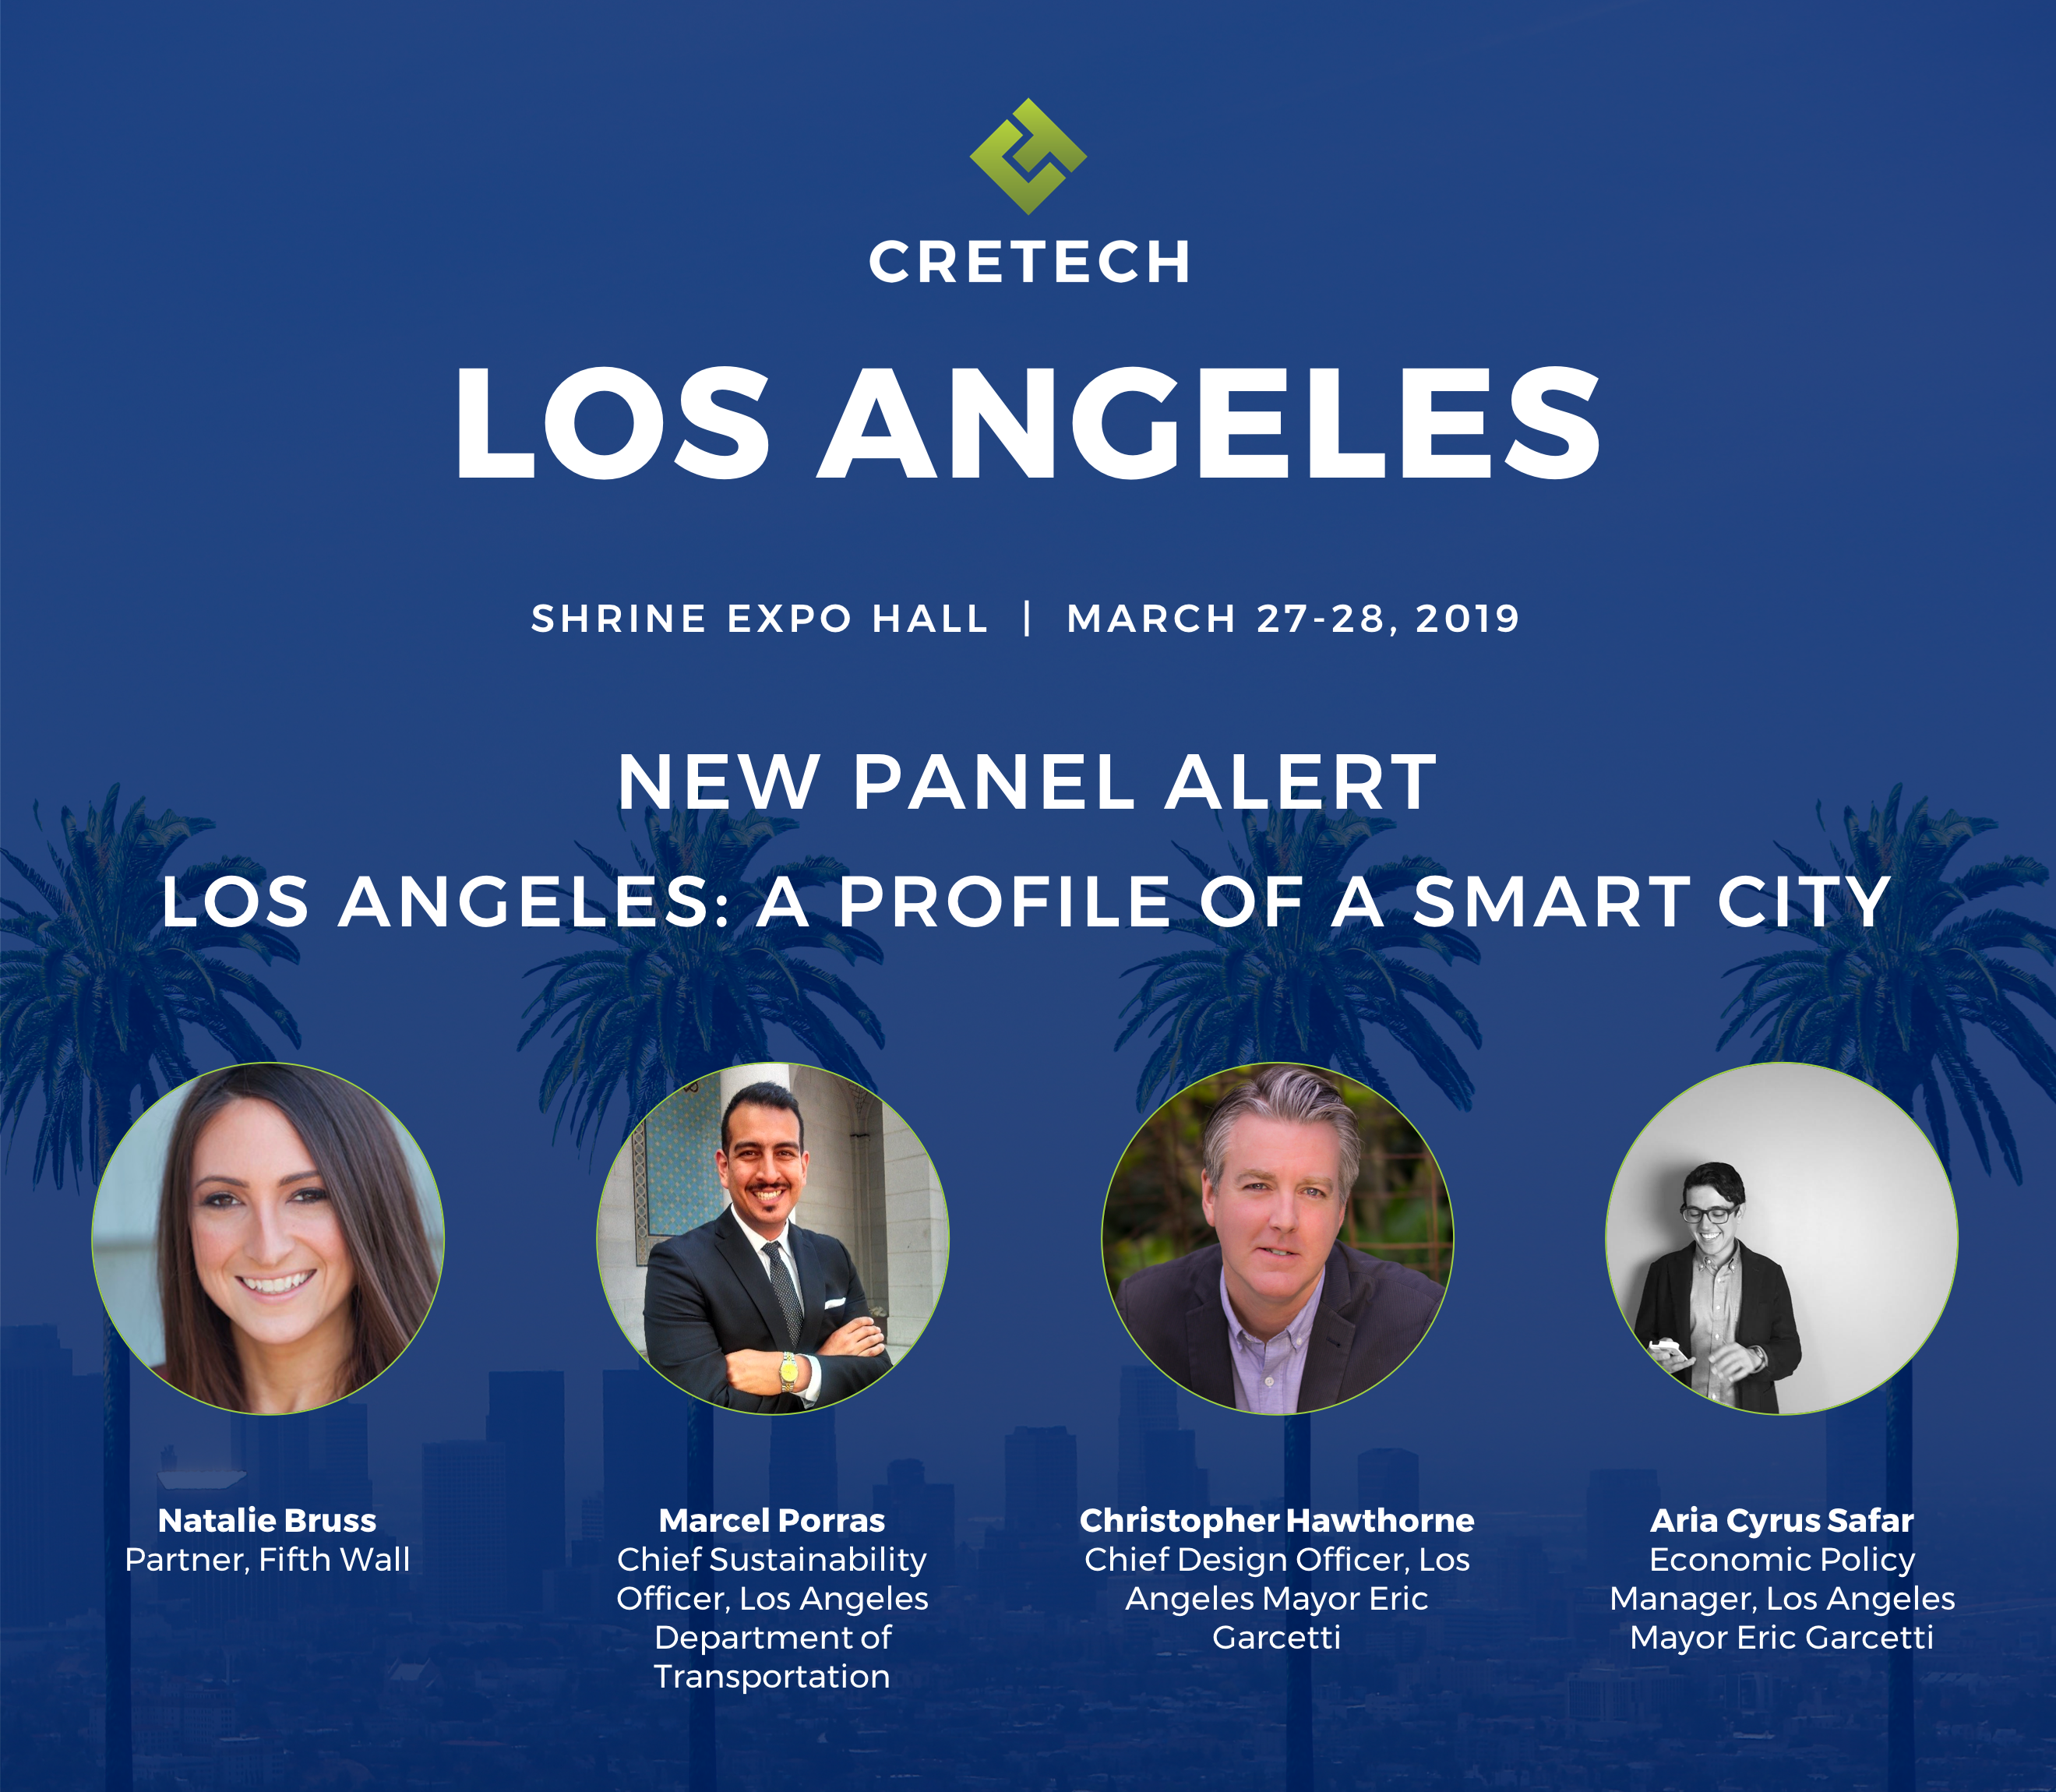 Top City Tech Officials from Los Angeles to Participate in